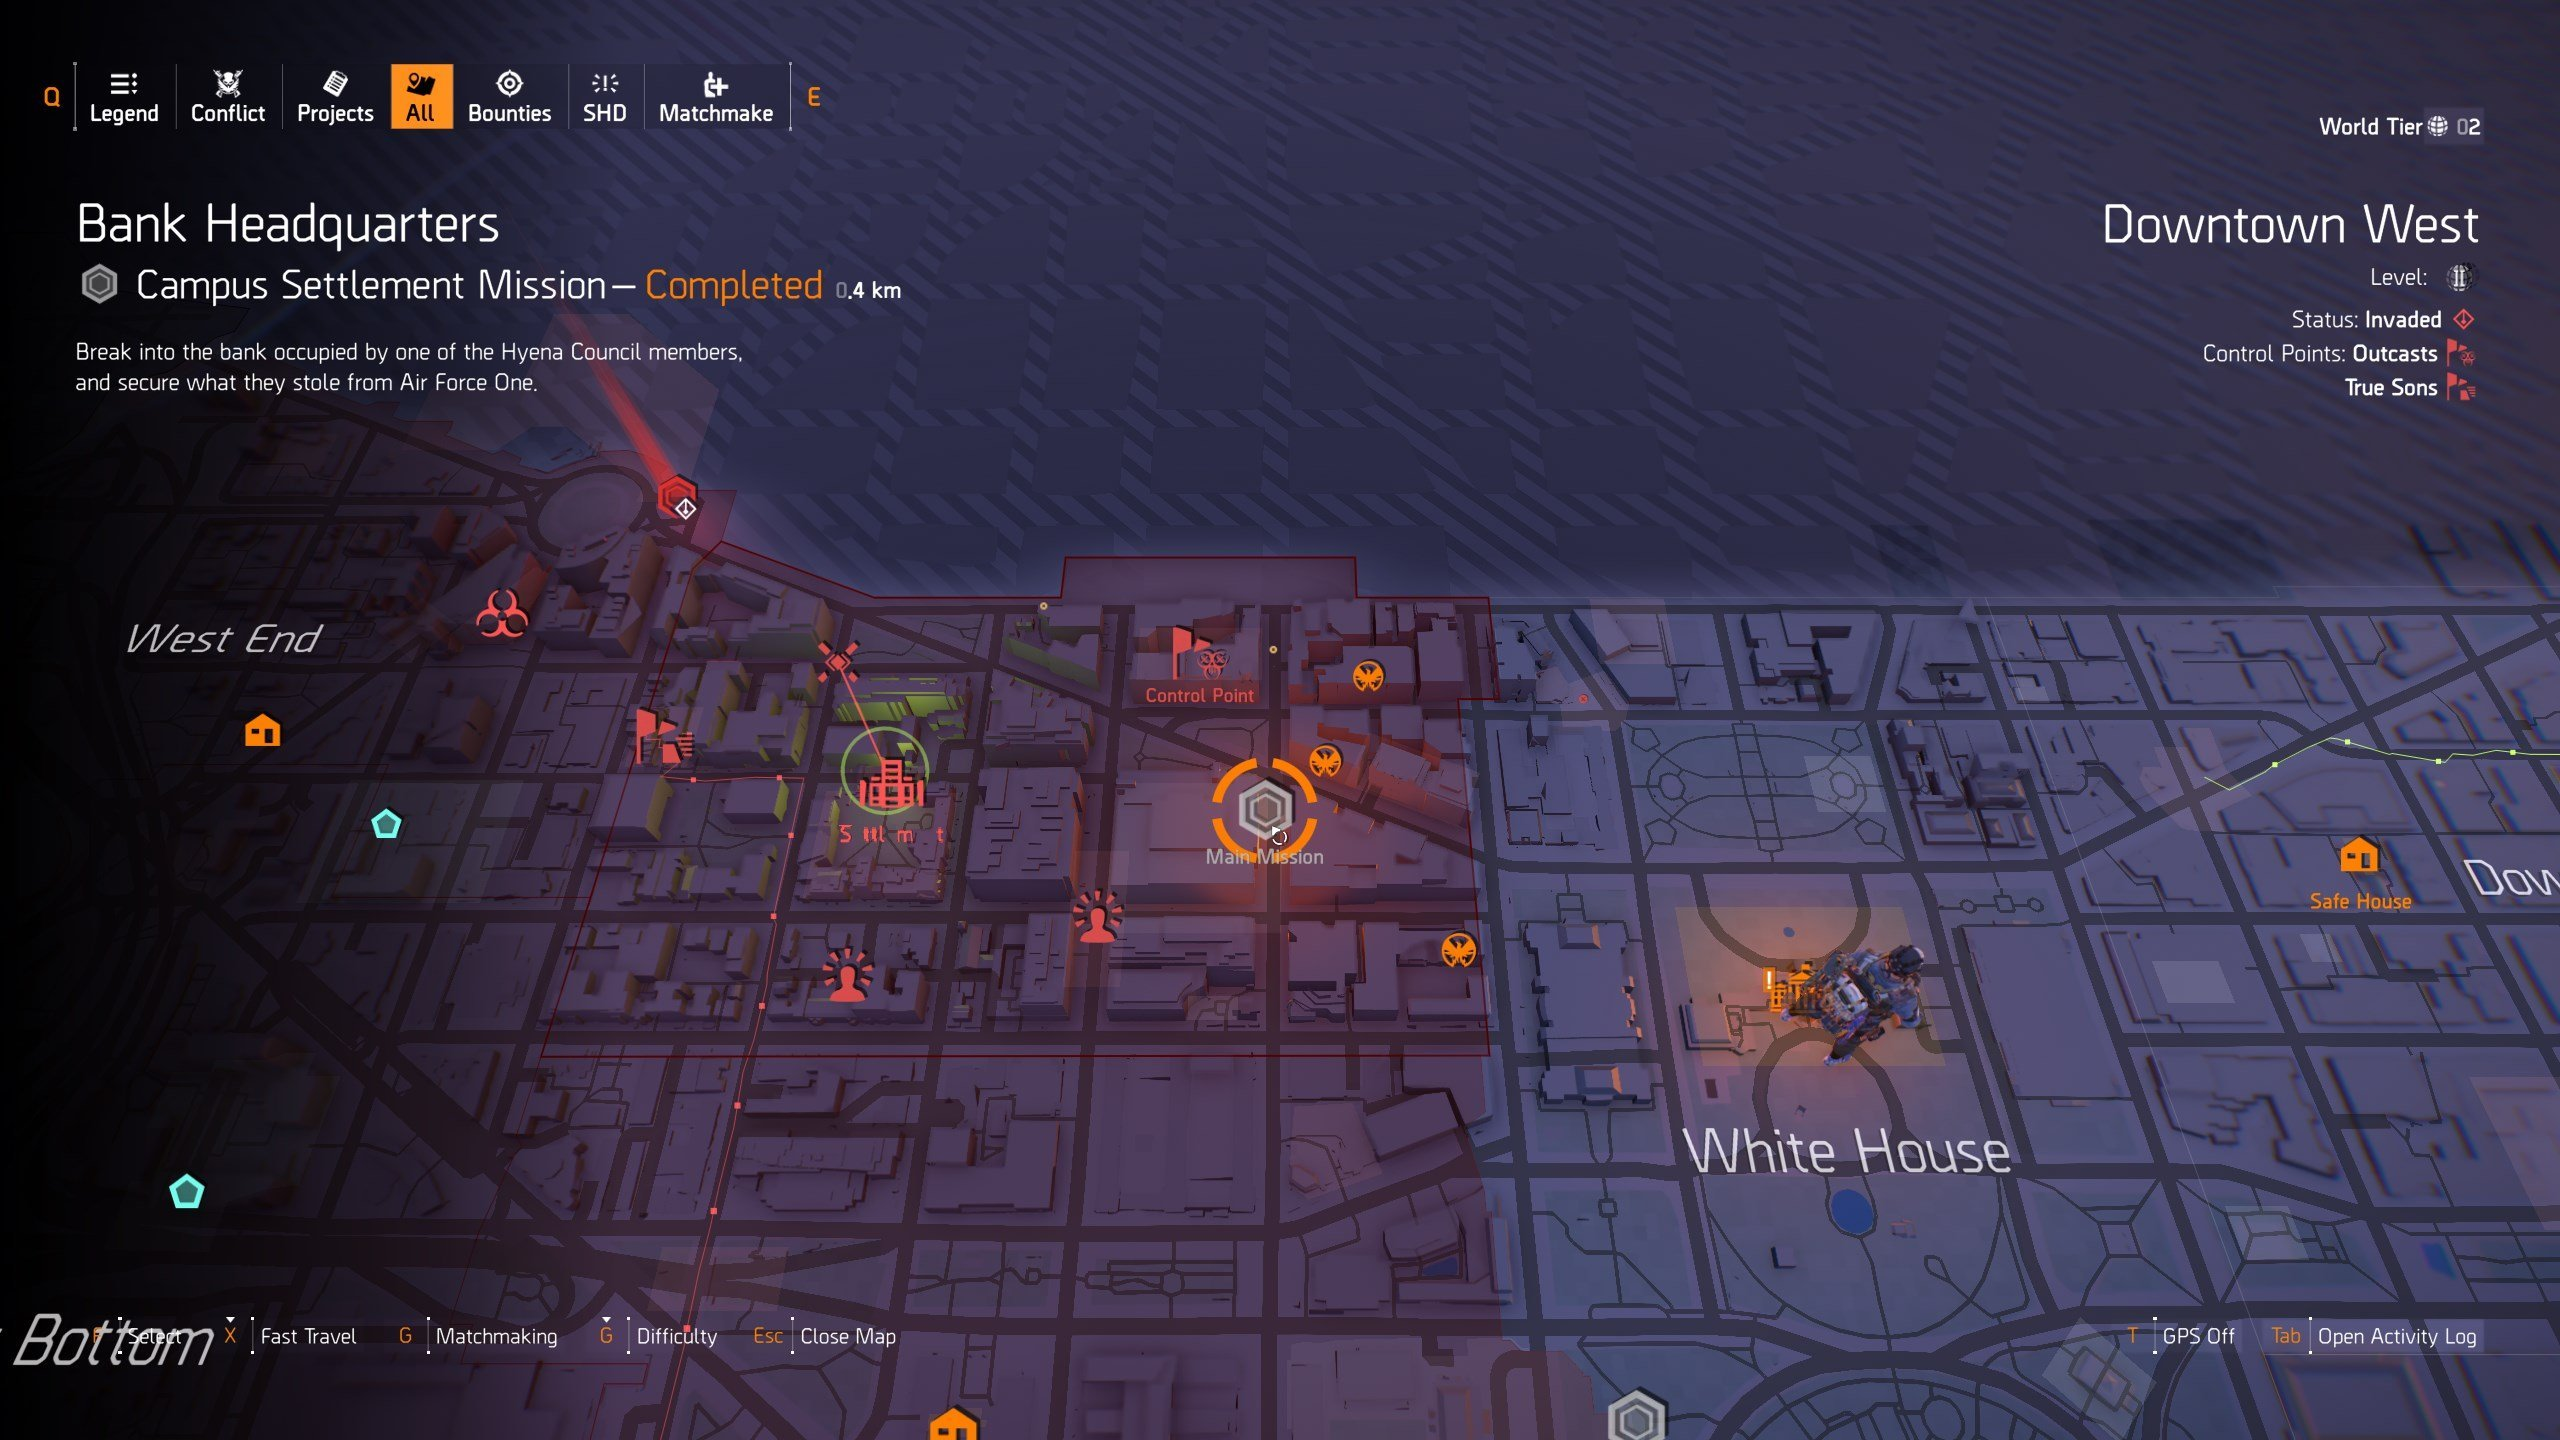 Chatterbox SMG Perks - The Blueprint location